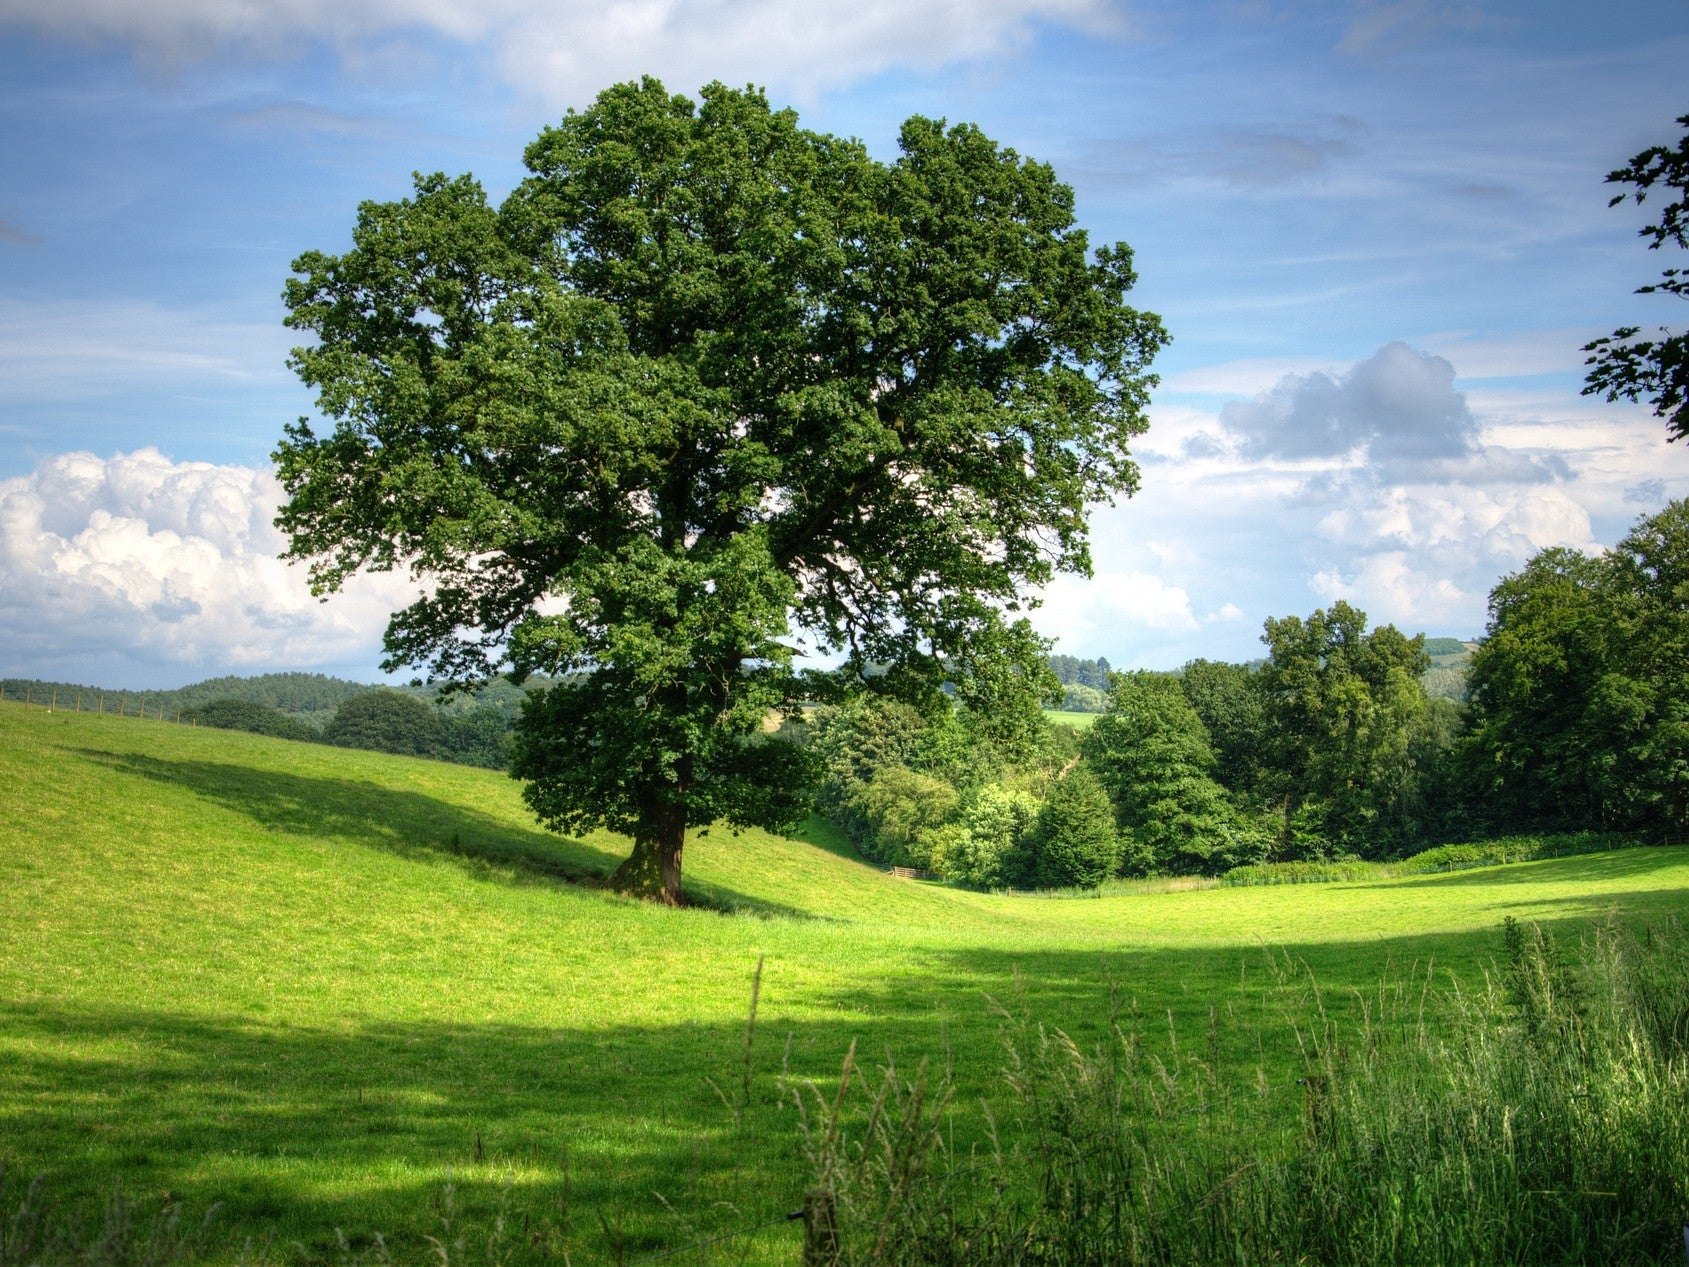 Trees need wind to reproduce. Climate change is messing that up.